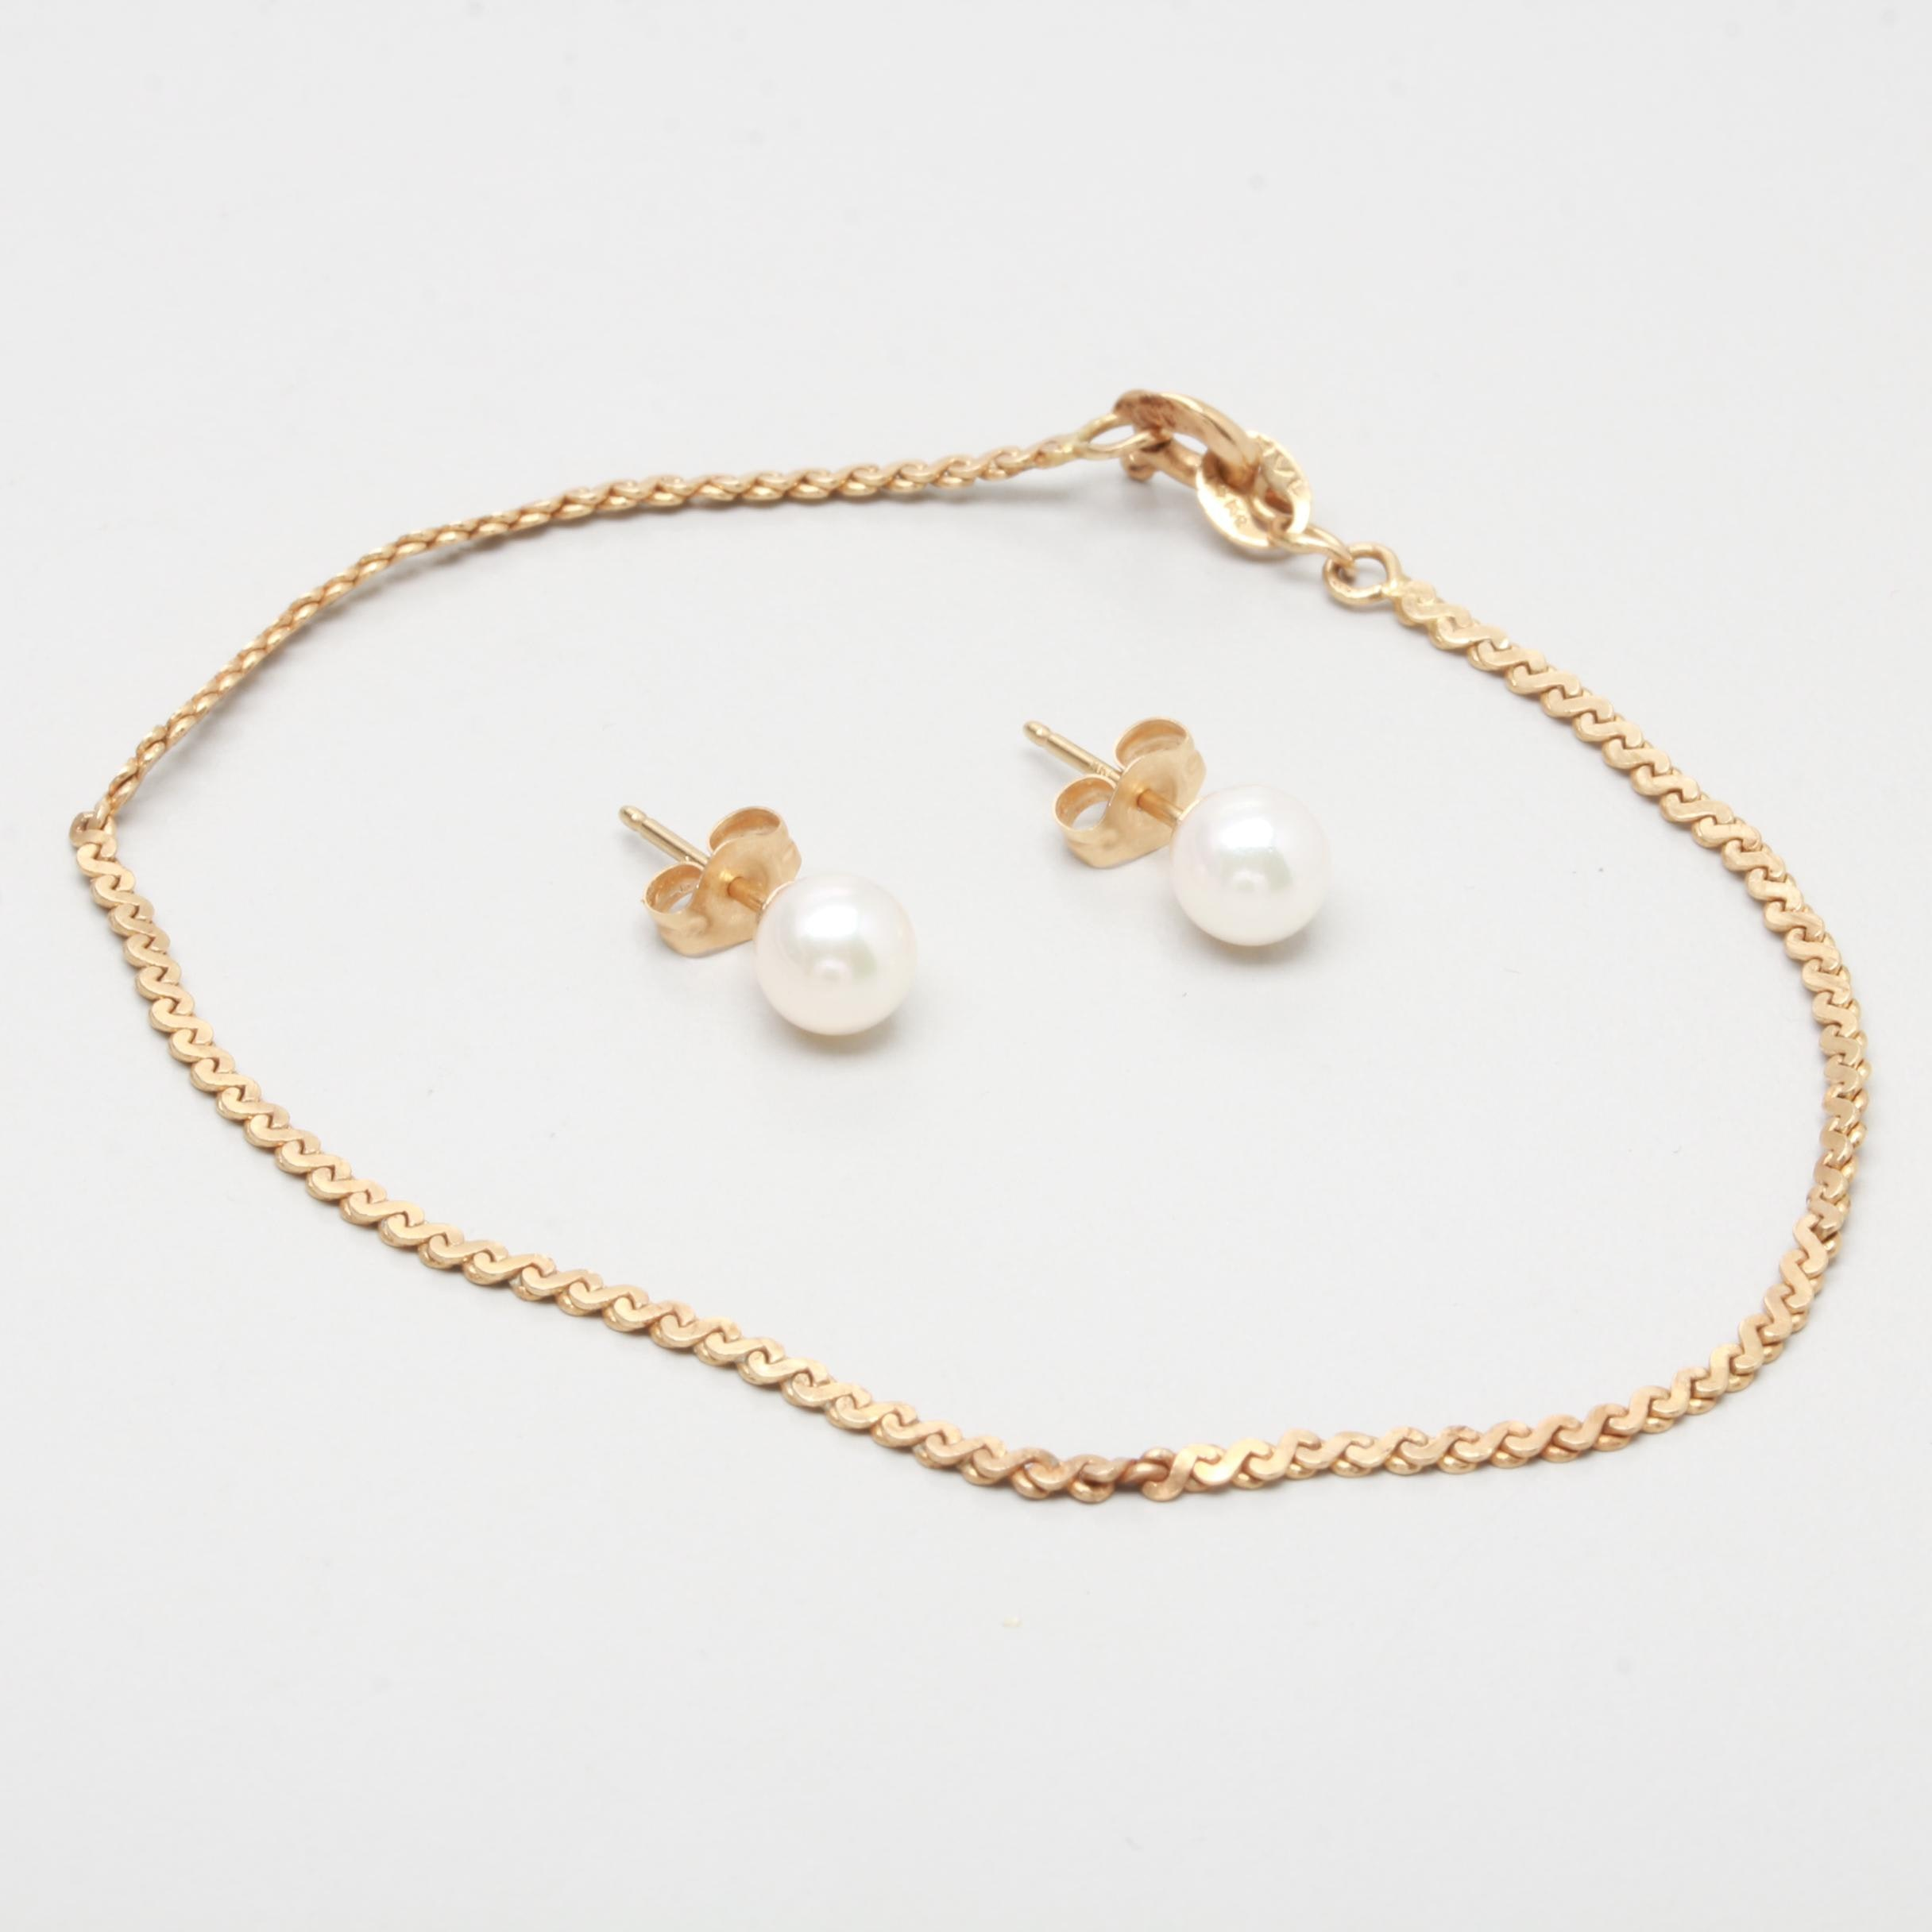 14K Yellow Gold Bracelet with Cultured Pearl Earrings